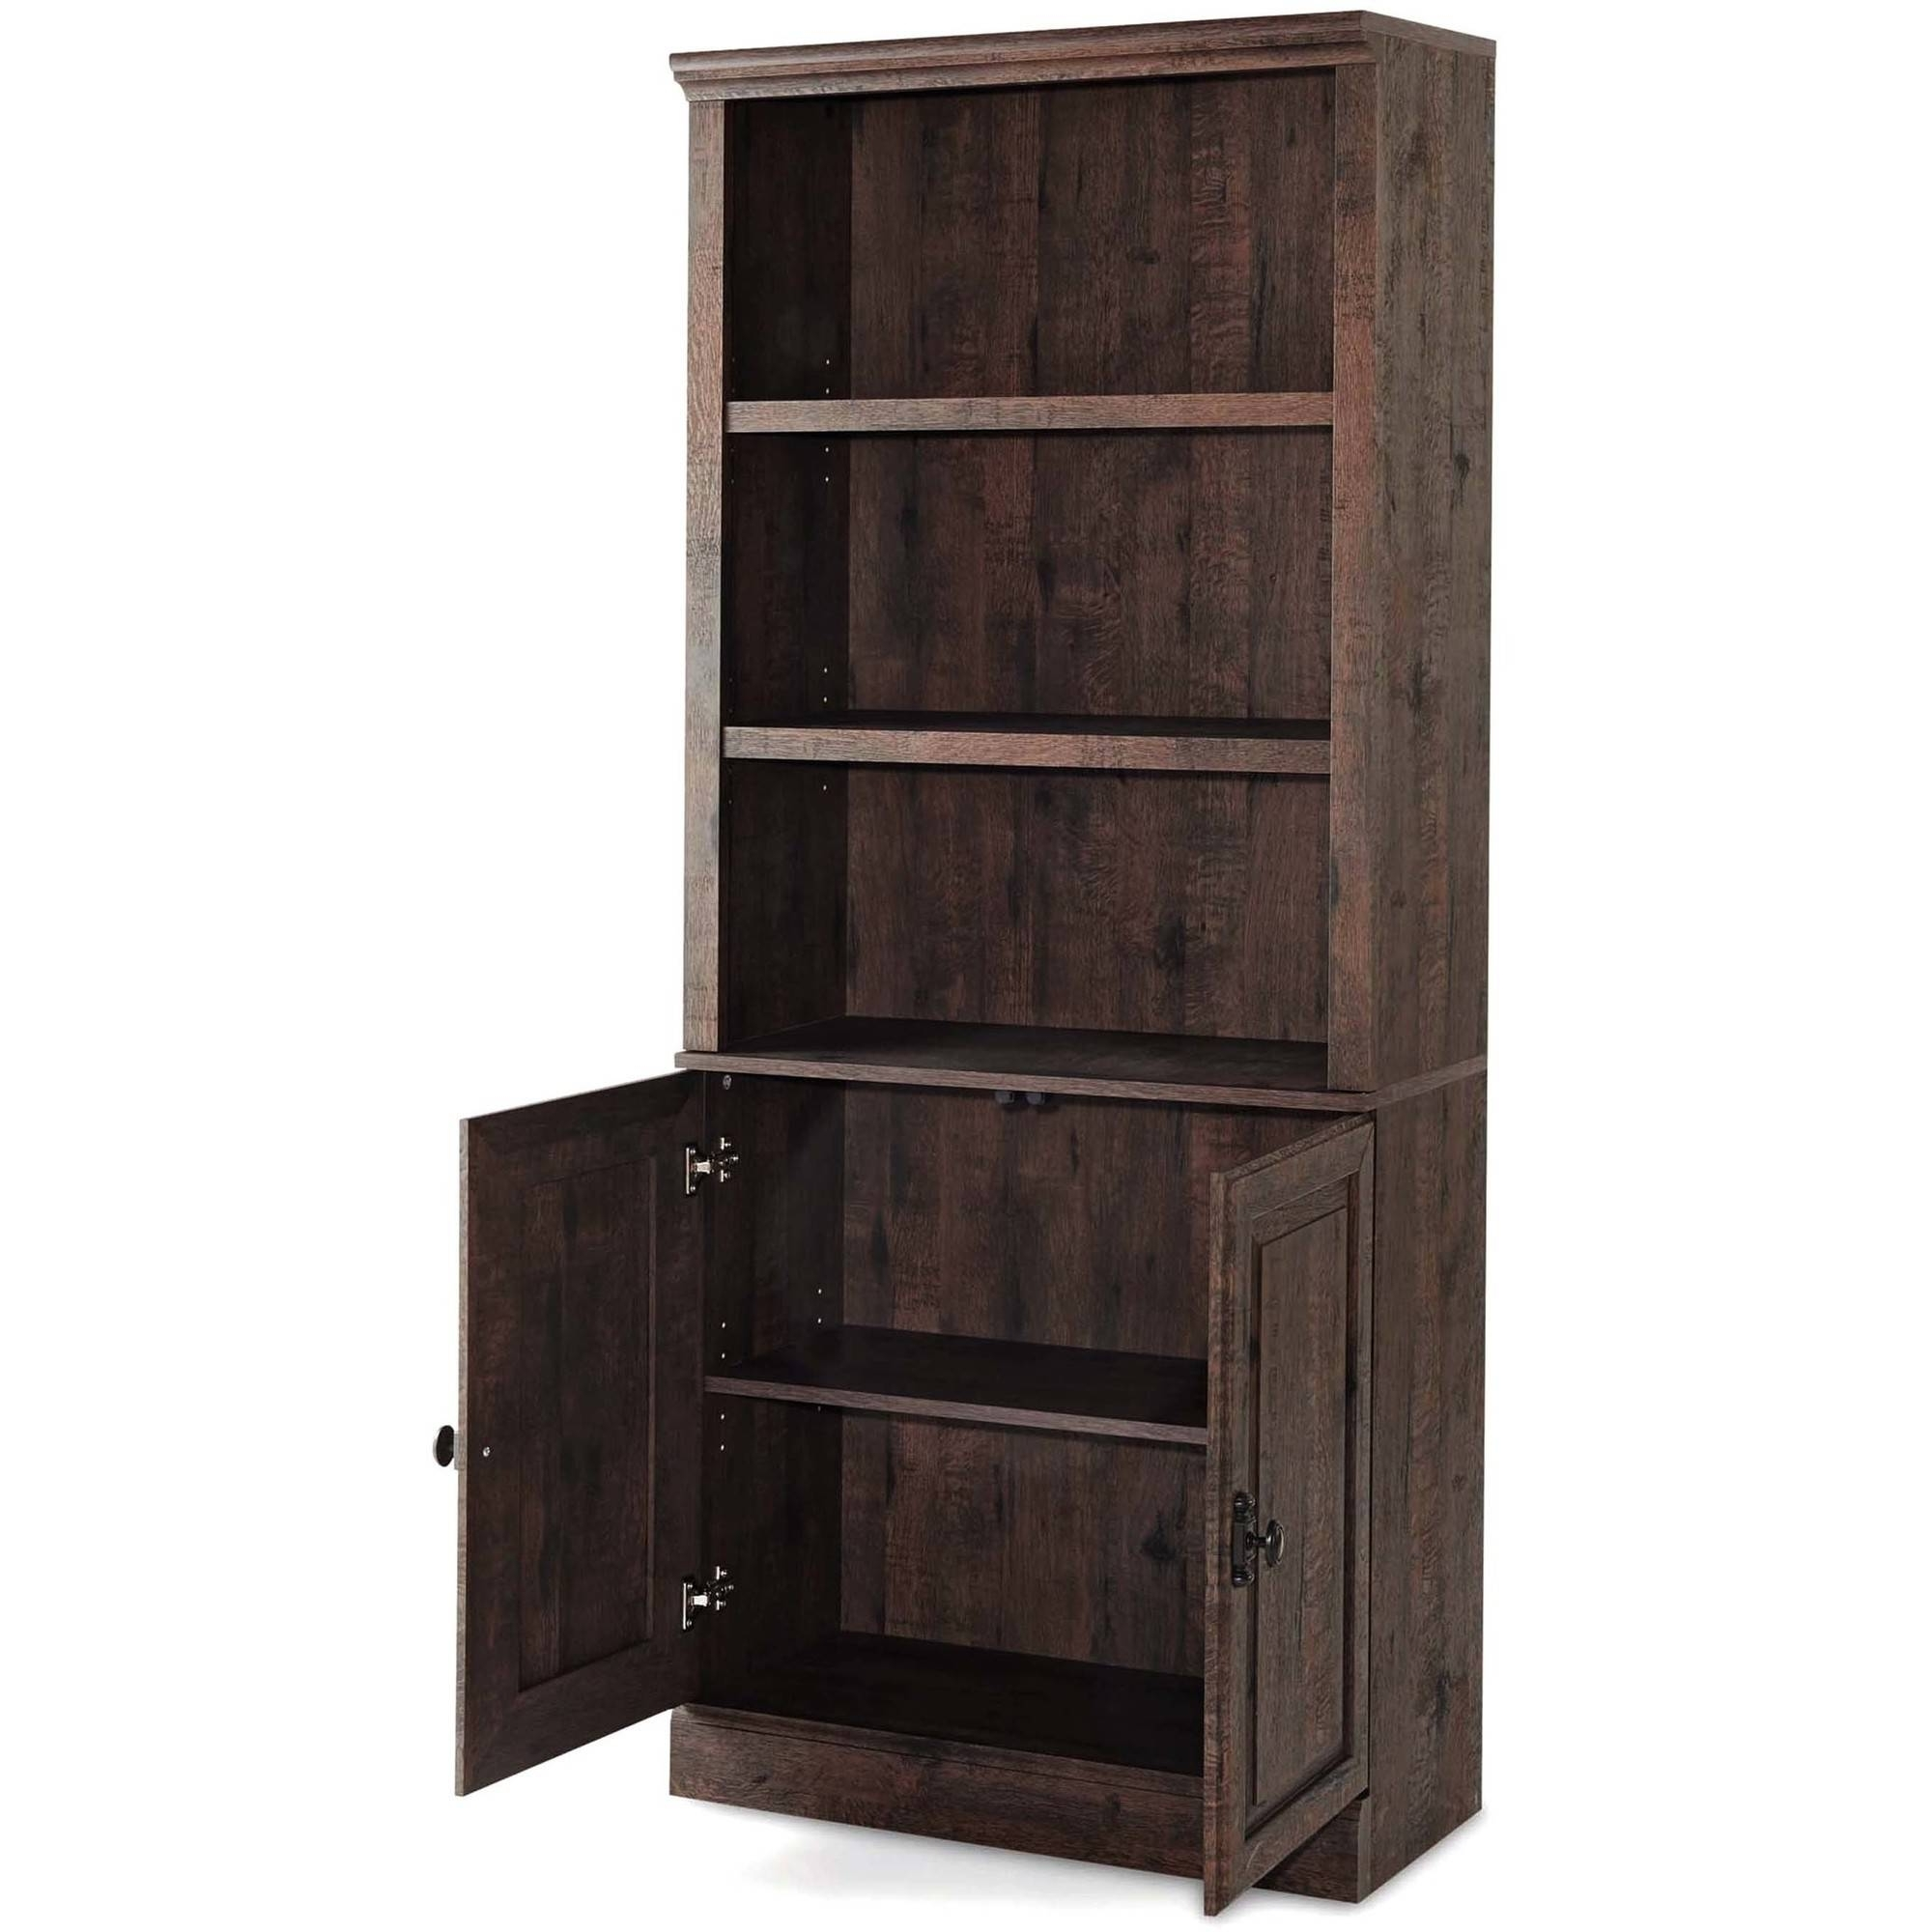 Most Popular Better Homes And Gardens Crossmill Bookcase With Doors, Multiple With Bookcases With Doors On Bottom (View 9 of 15)